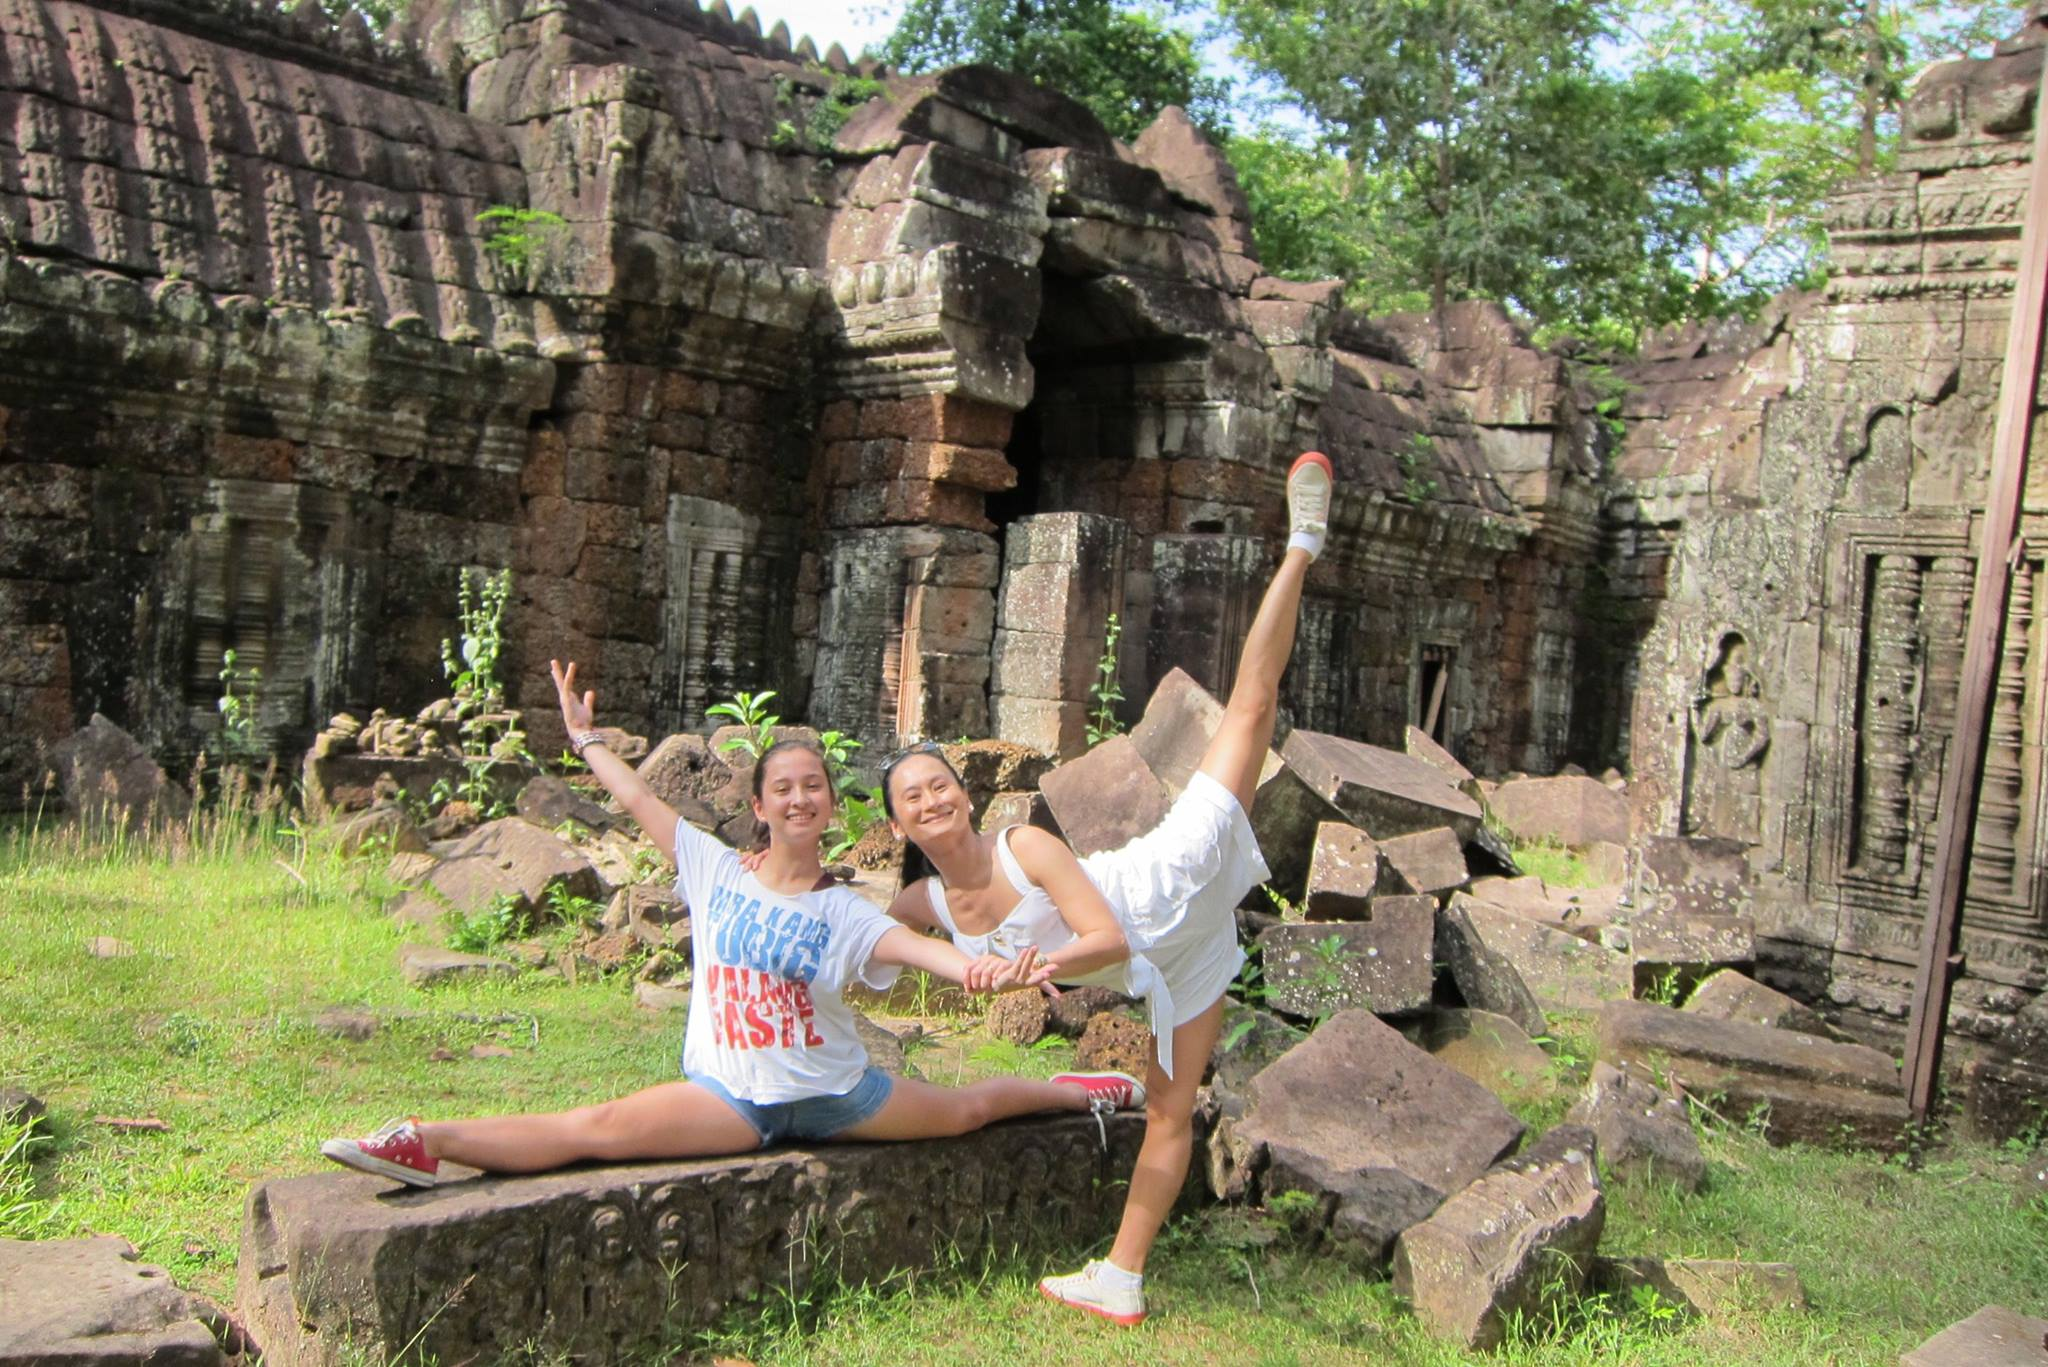 In Cambodia in 2013, mother and daughter demonstrate their flexibility with splits executed amid the ruins of the Angkor Wat. Photo courtesy of Missy Macuja-Elizalde